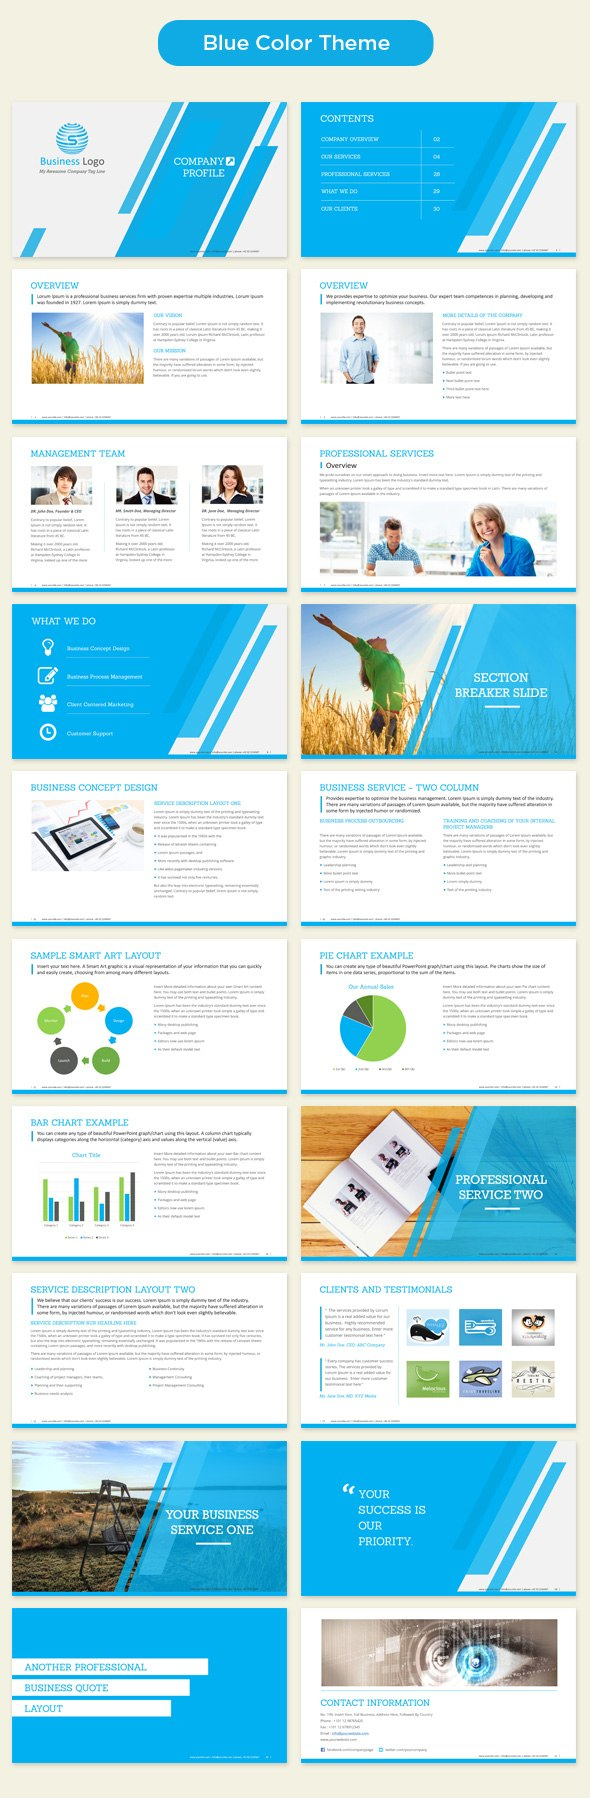 Company Profile Powerpoint Template   Master Ppt Slide Templates Regarding Business Profile Template Ppt